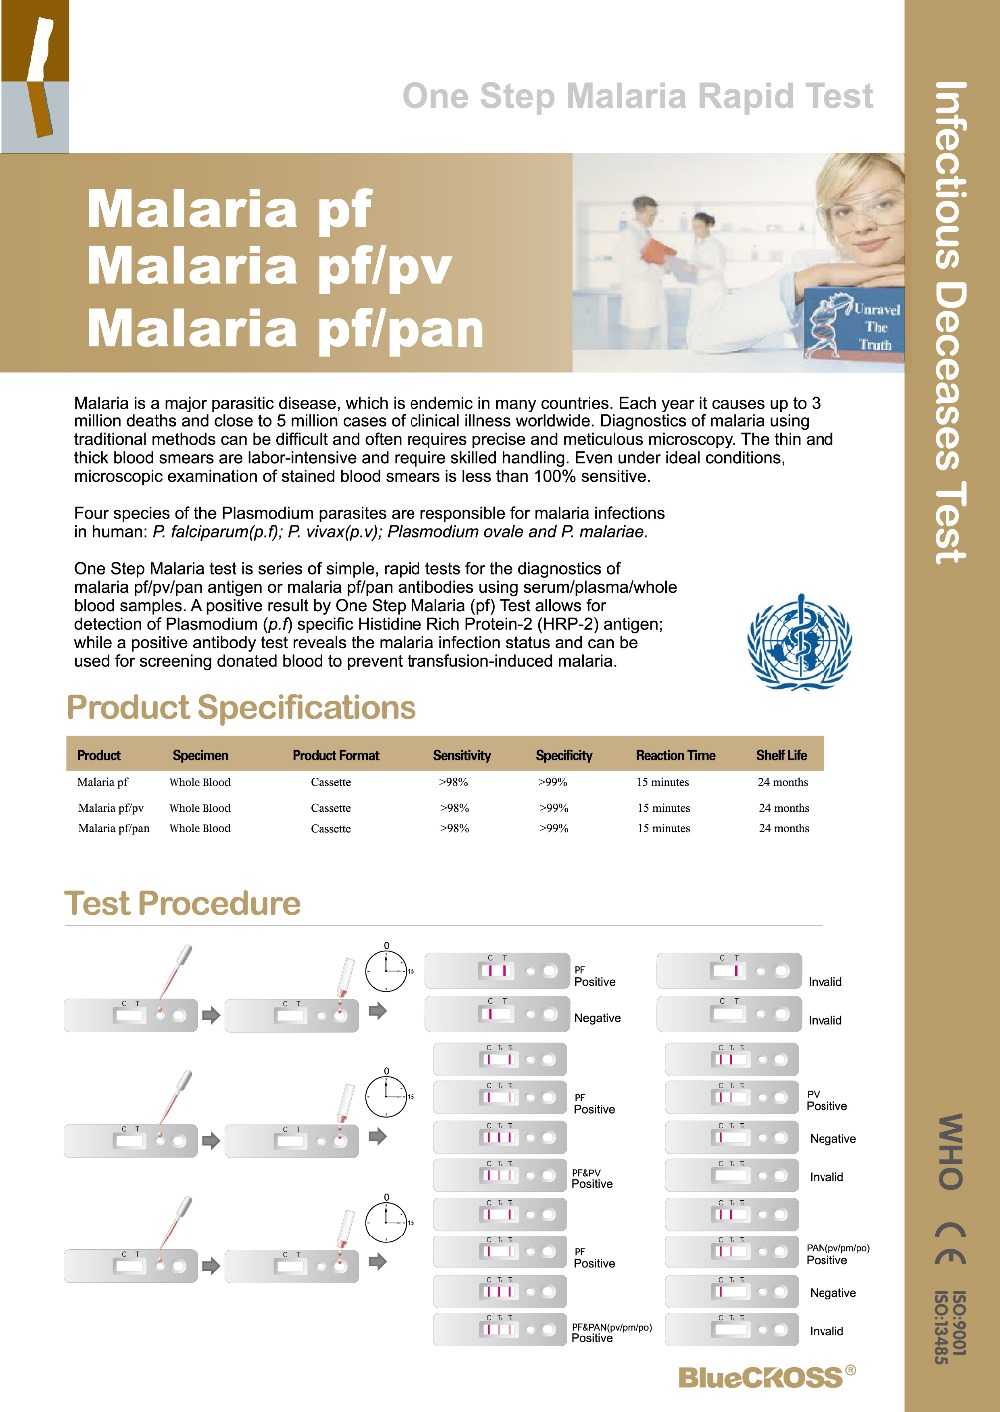 CE WHO Approved Rapid Malaria Diagnostic Test Kits One Step Malaria Test From 25 Years Professional Trustworthy Manufacturer